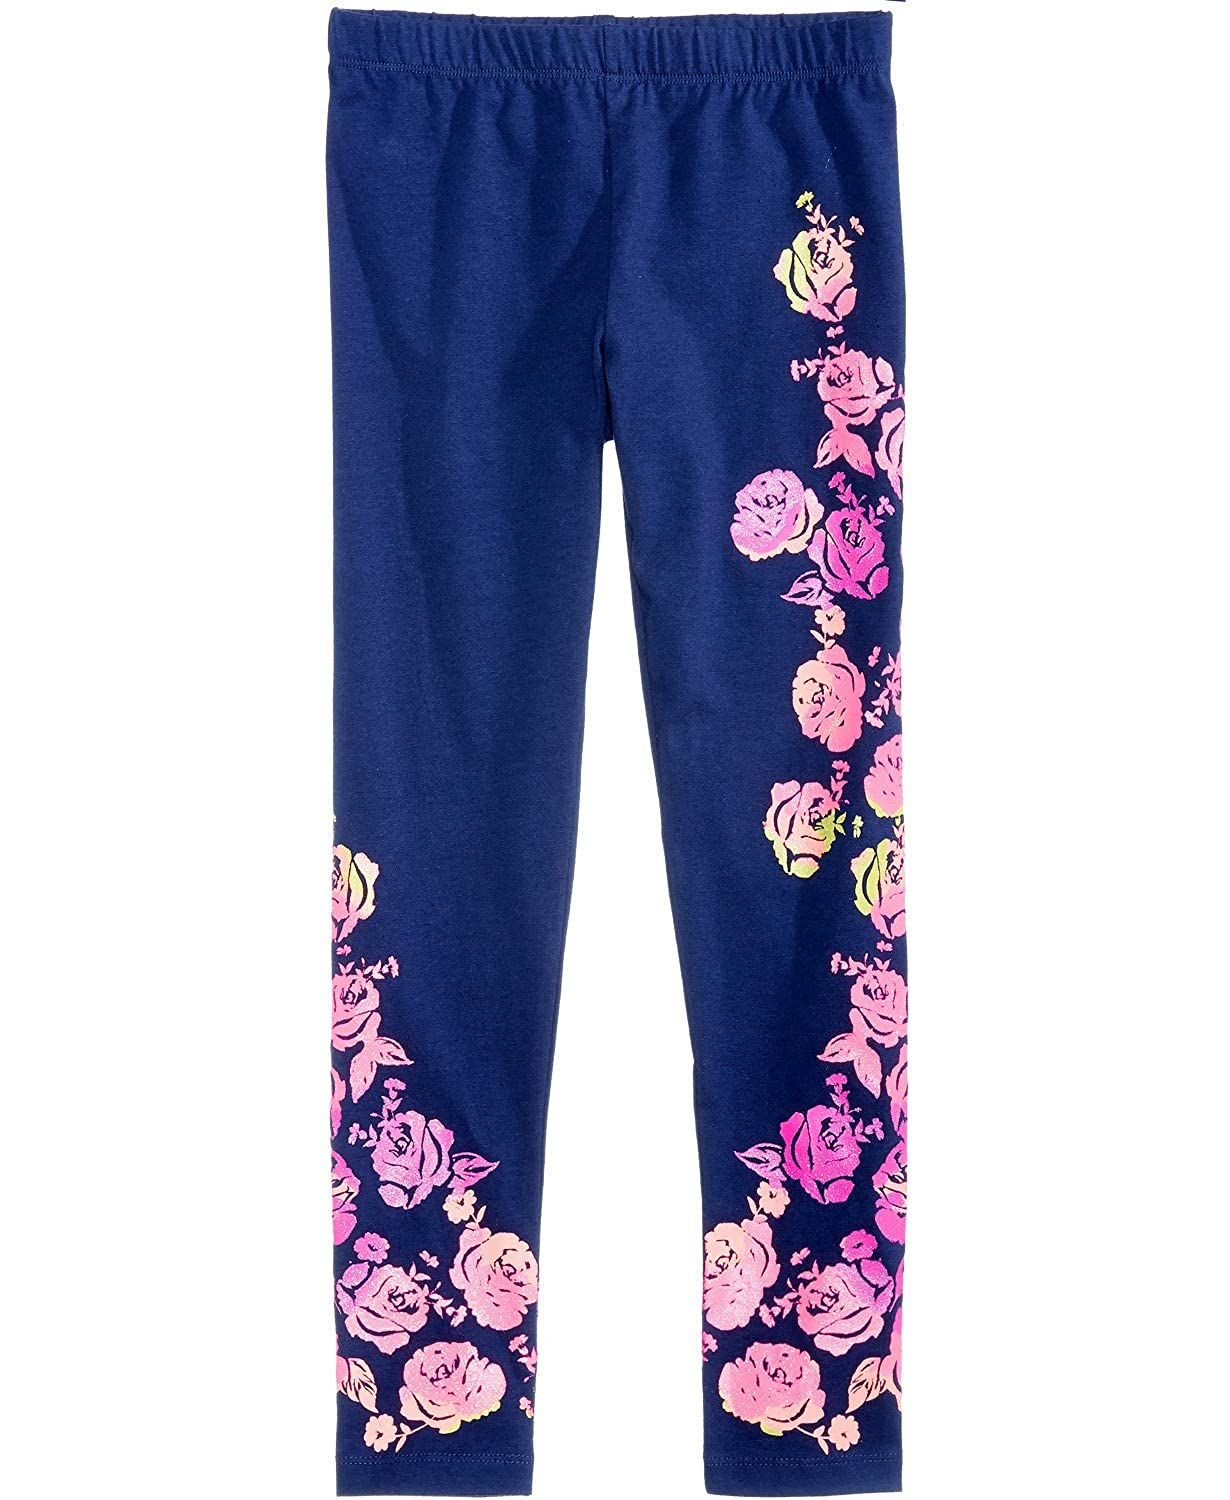 10//12 Epic Threads Big Girls Floral-Print Leggings Medieval Blue Size M